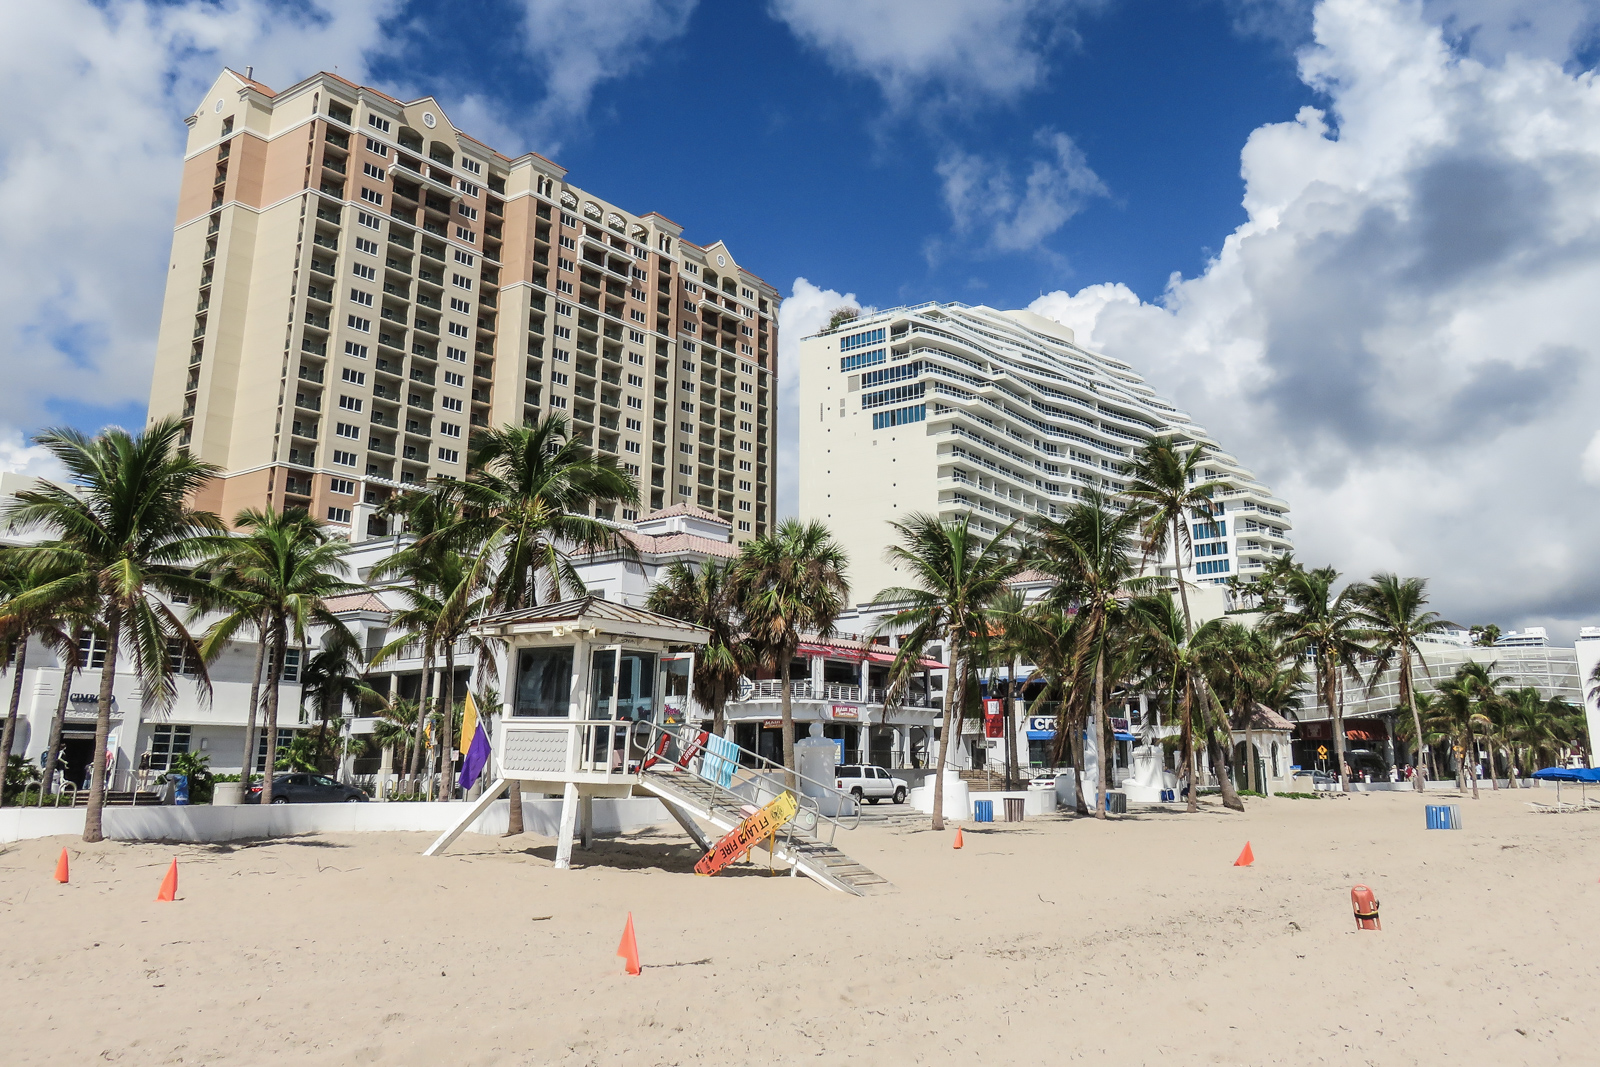 Fort Lauderdale beach front, top things to do in Fort Lauderdale